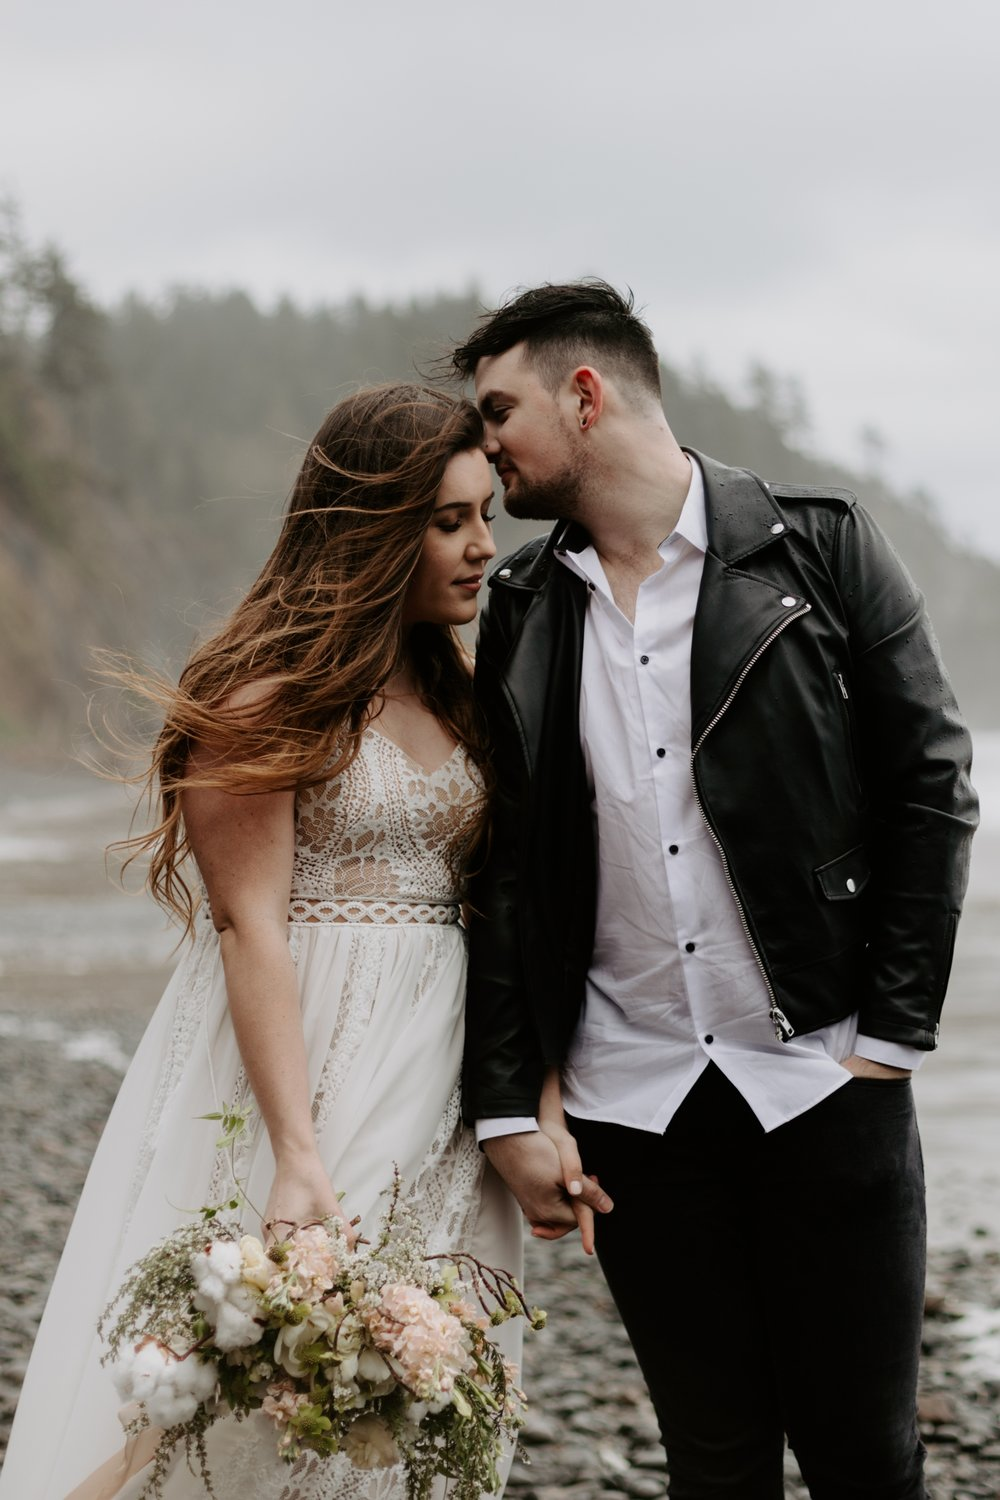 intimate-oregon-coast-elopement-2018-04-26_0011.jpg